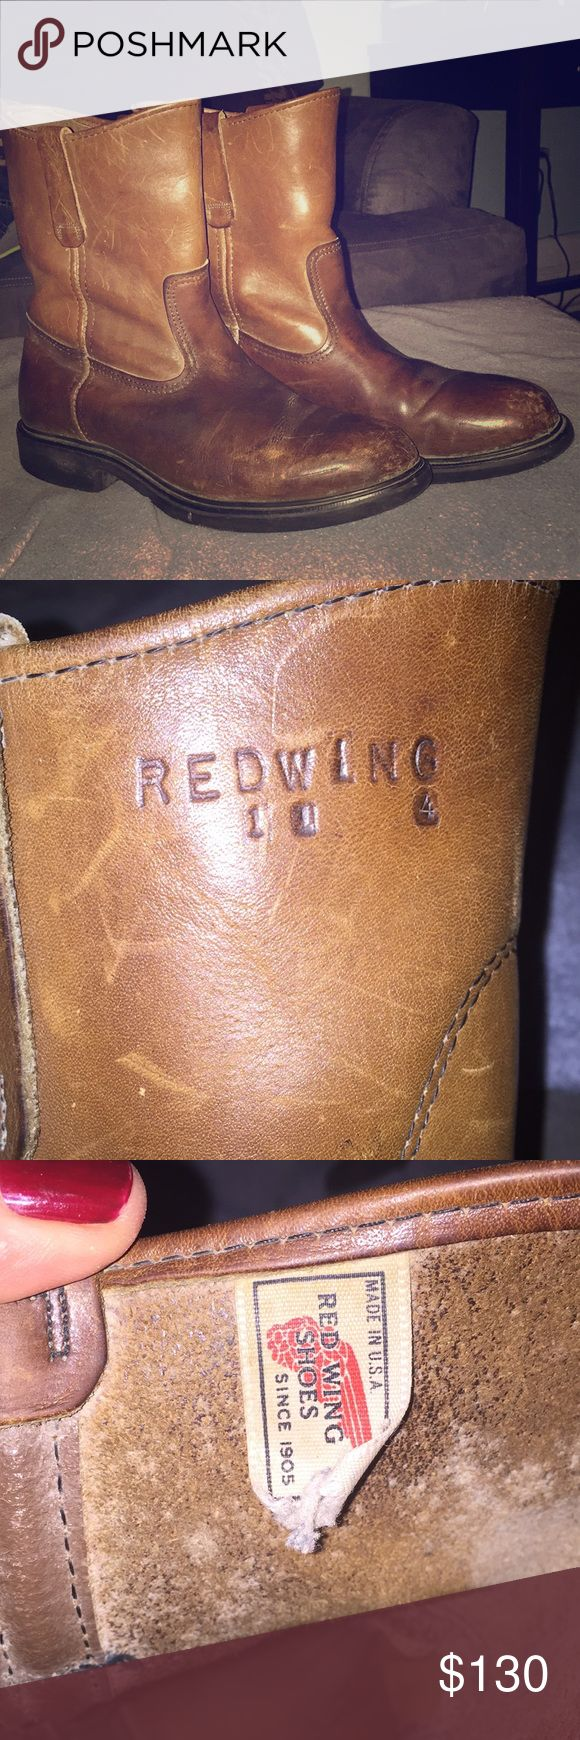 Redwing Boots - Vintage Pecos. Mens 11 Vintage Pecos style. Men's Size 11. Sharp looking.   Sole and upper and lower in great. condition. All leather, has some scuffs but seems to add character. Red Wing Shoes Shoes Boots